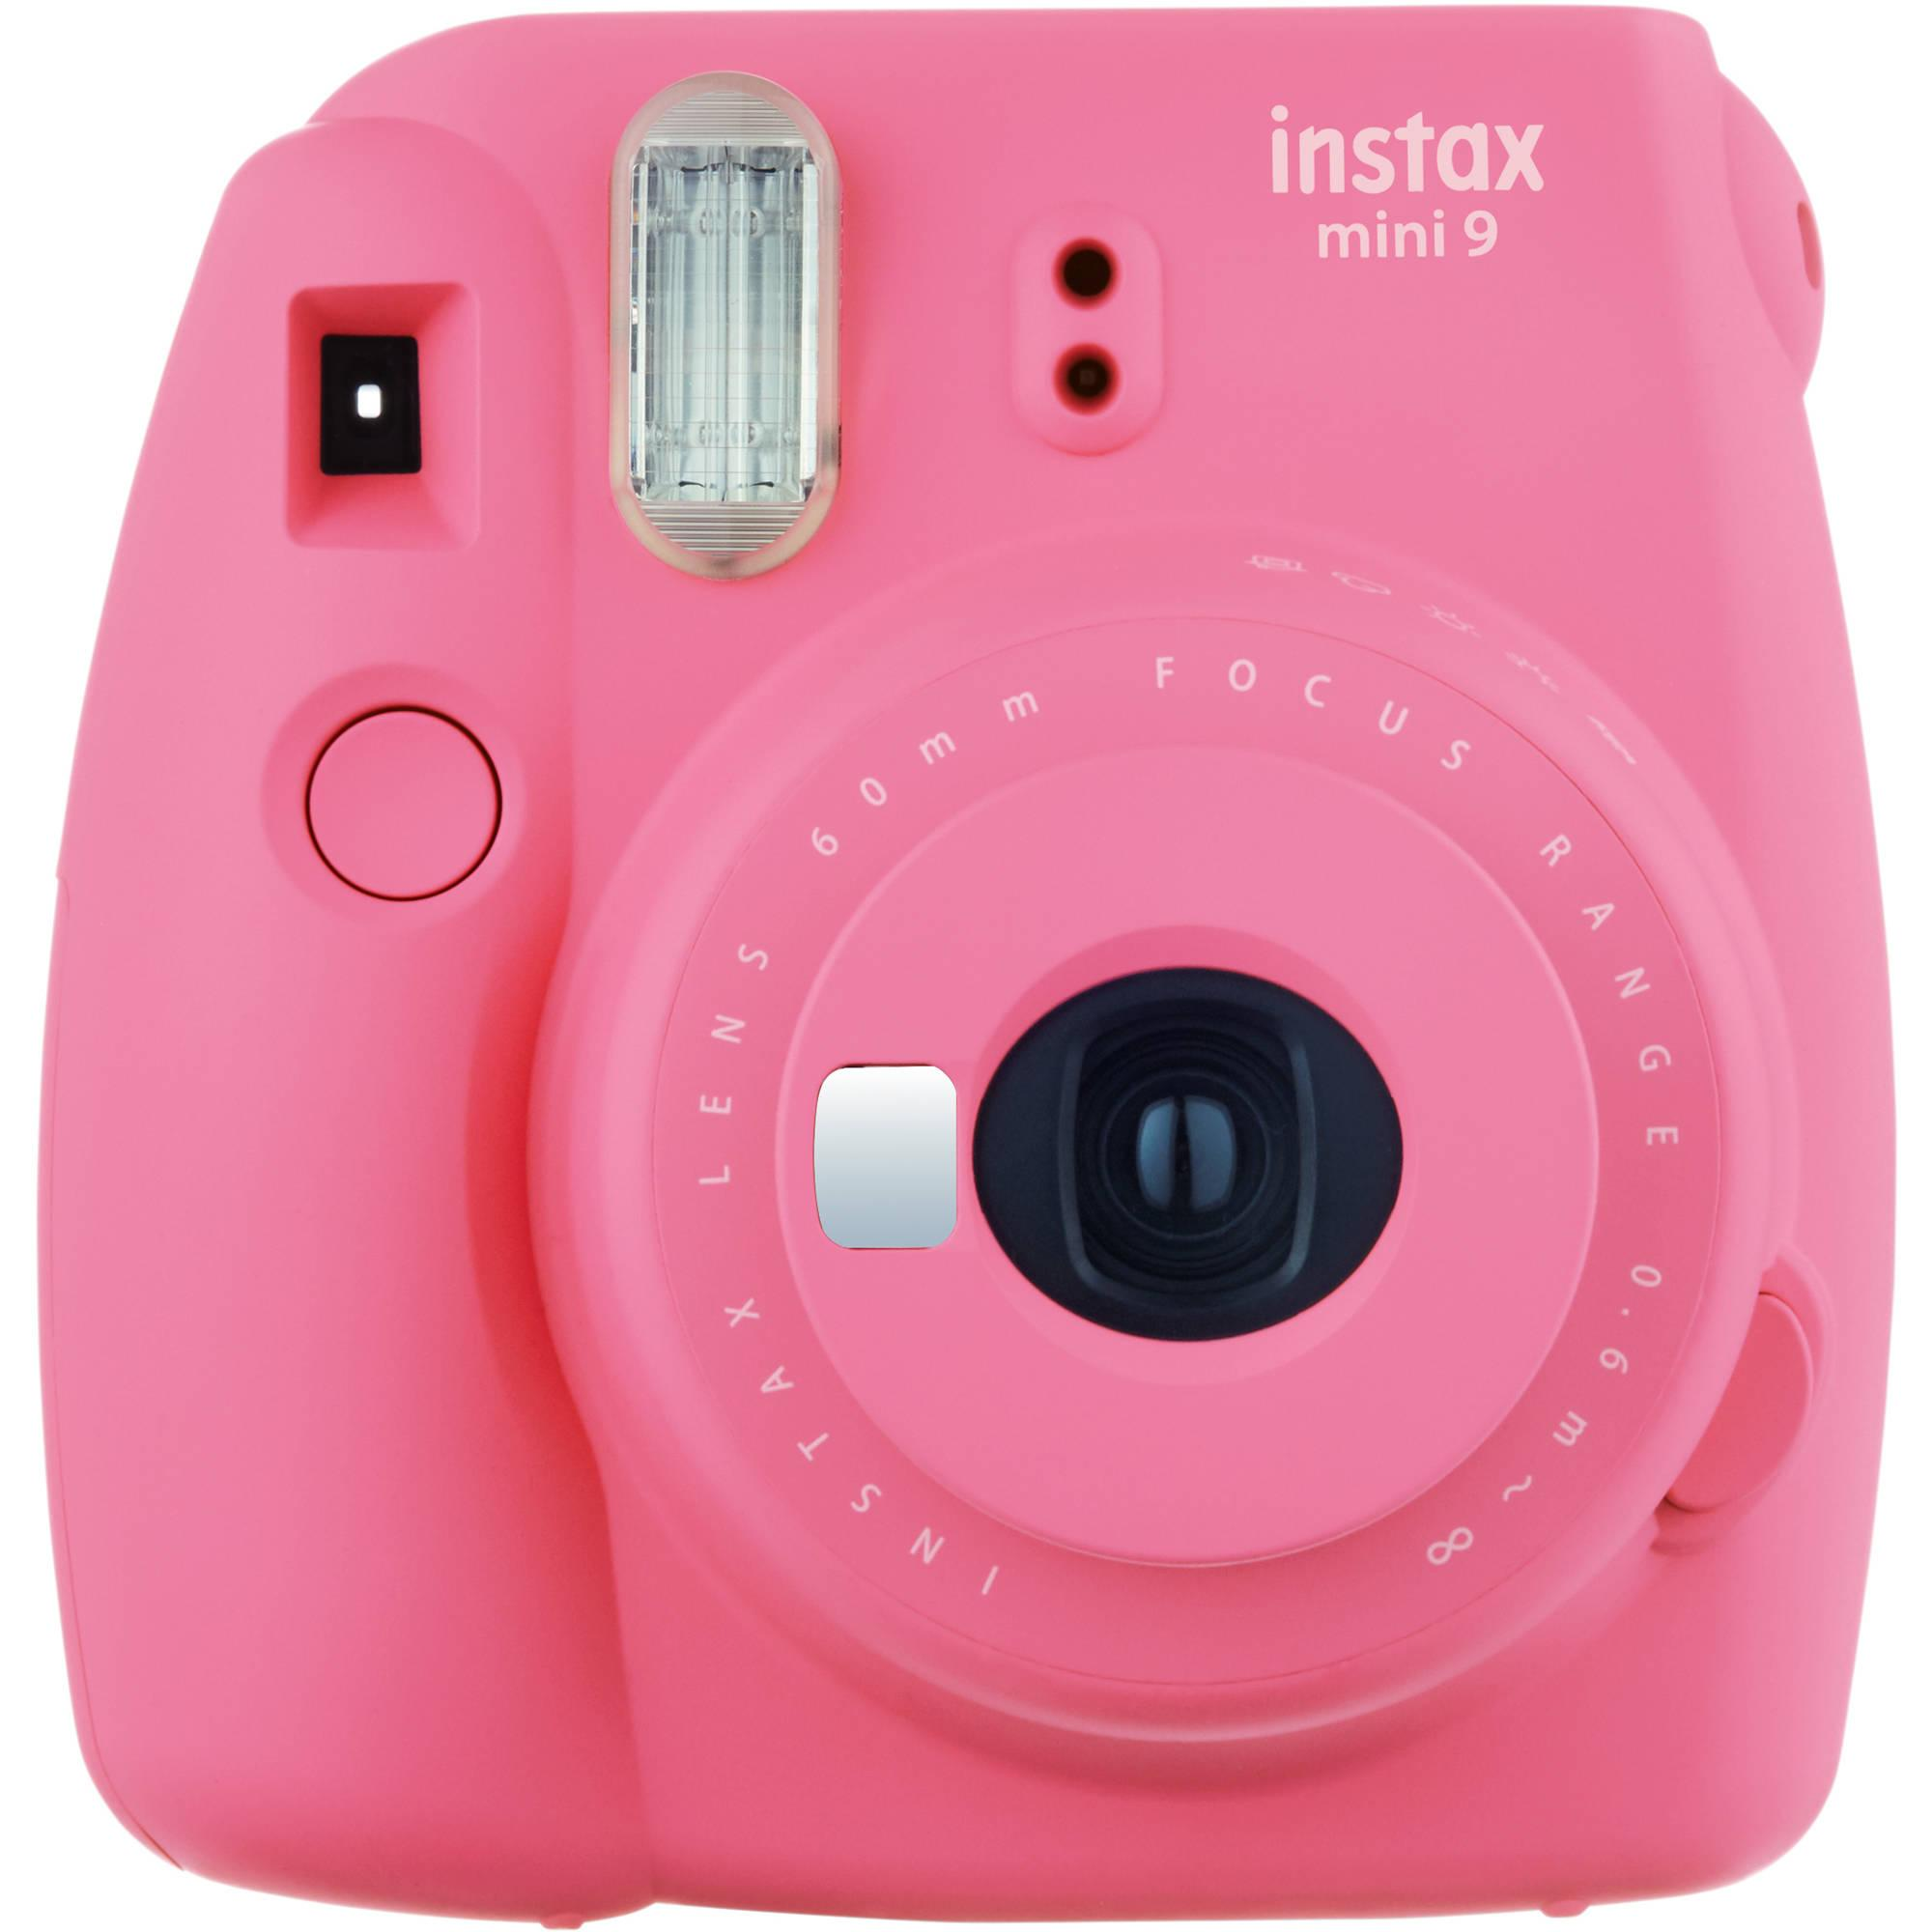 Instax Mini 9 Fujifilm instant camera